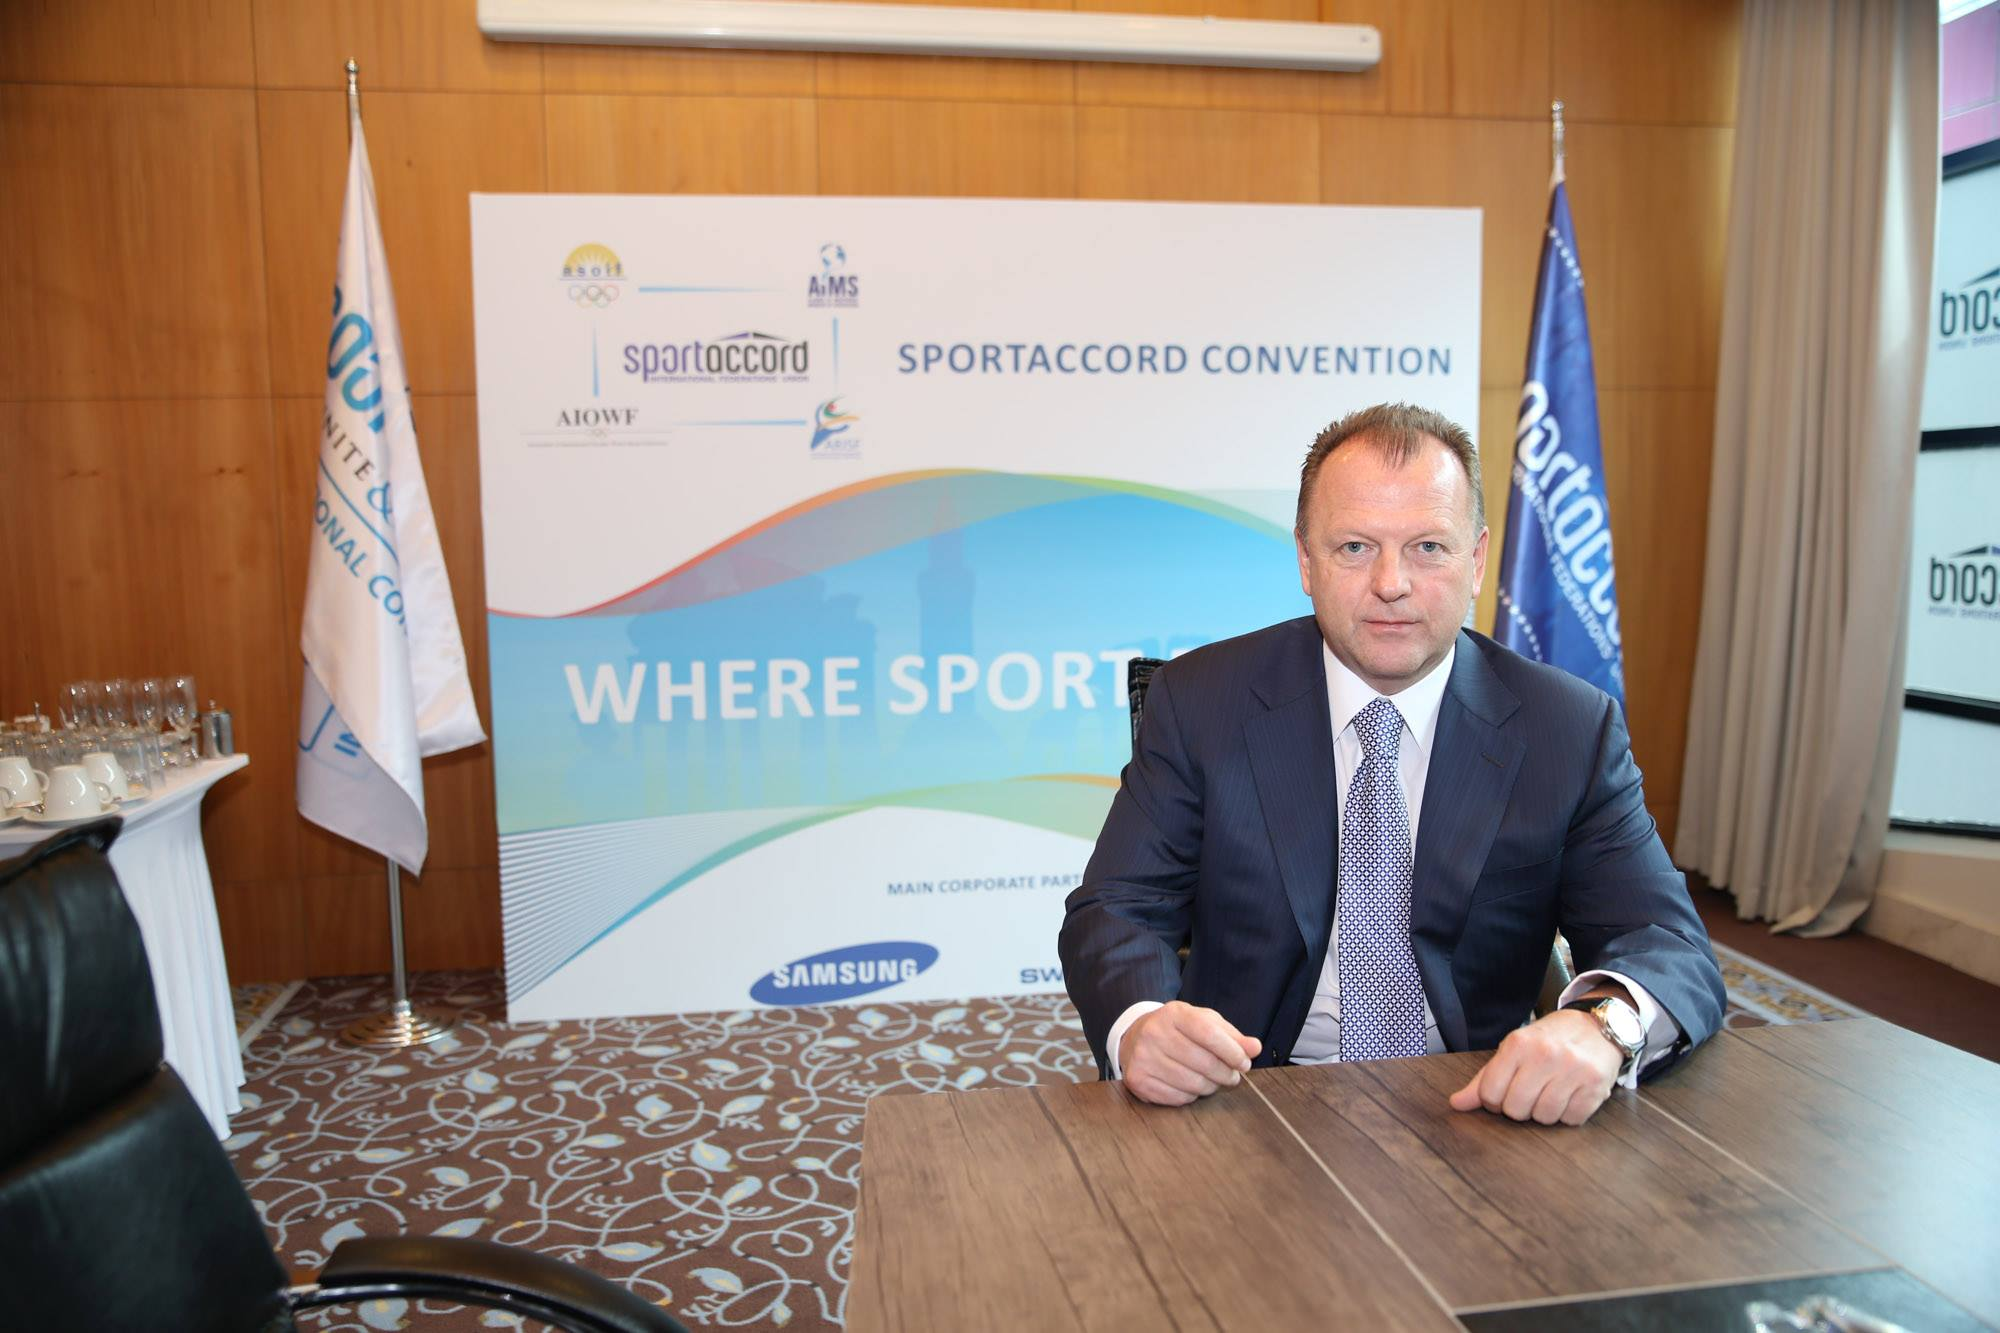 Marius Vizer is set to launch a new strategy for the 2015 SportAccord International Convention, he has revealed ©SportAccord Convention